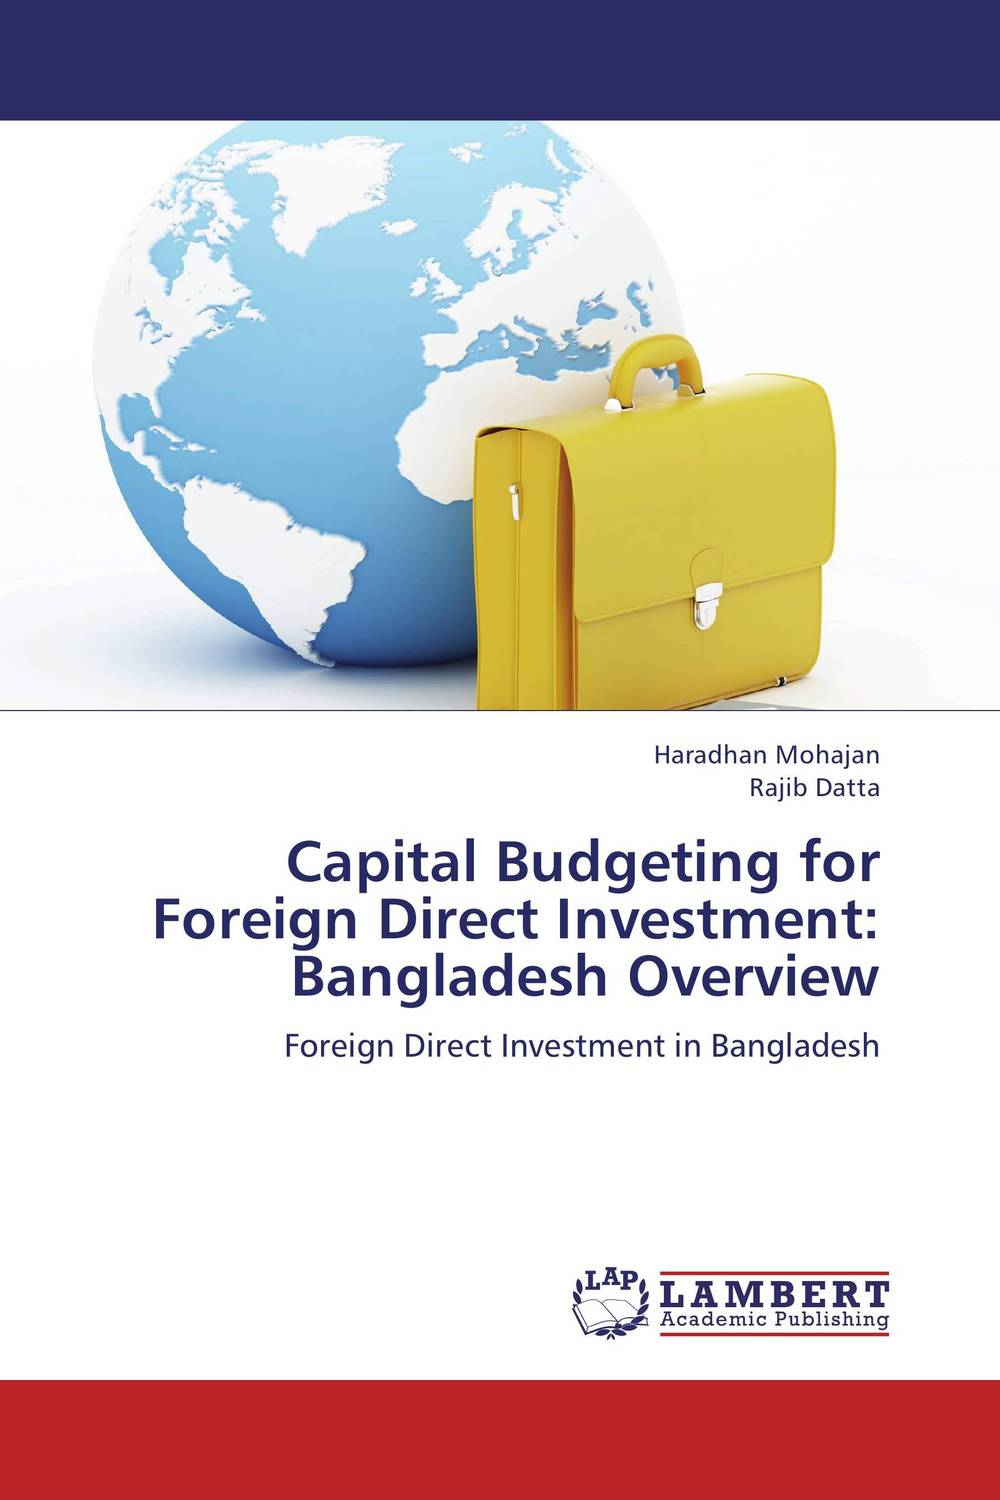 Capital Budgeting for Foreign Direct Investment: Bangladesh Overview